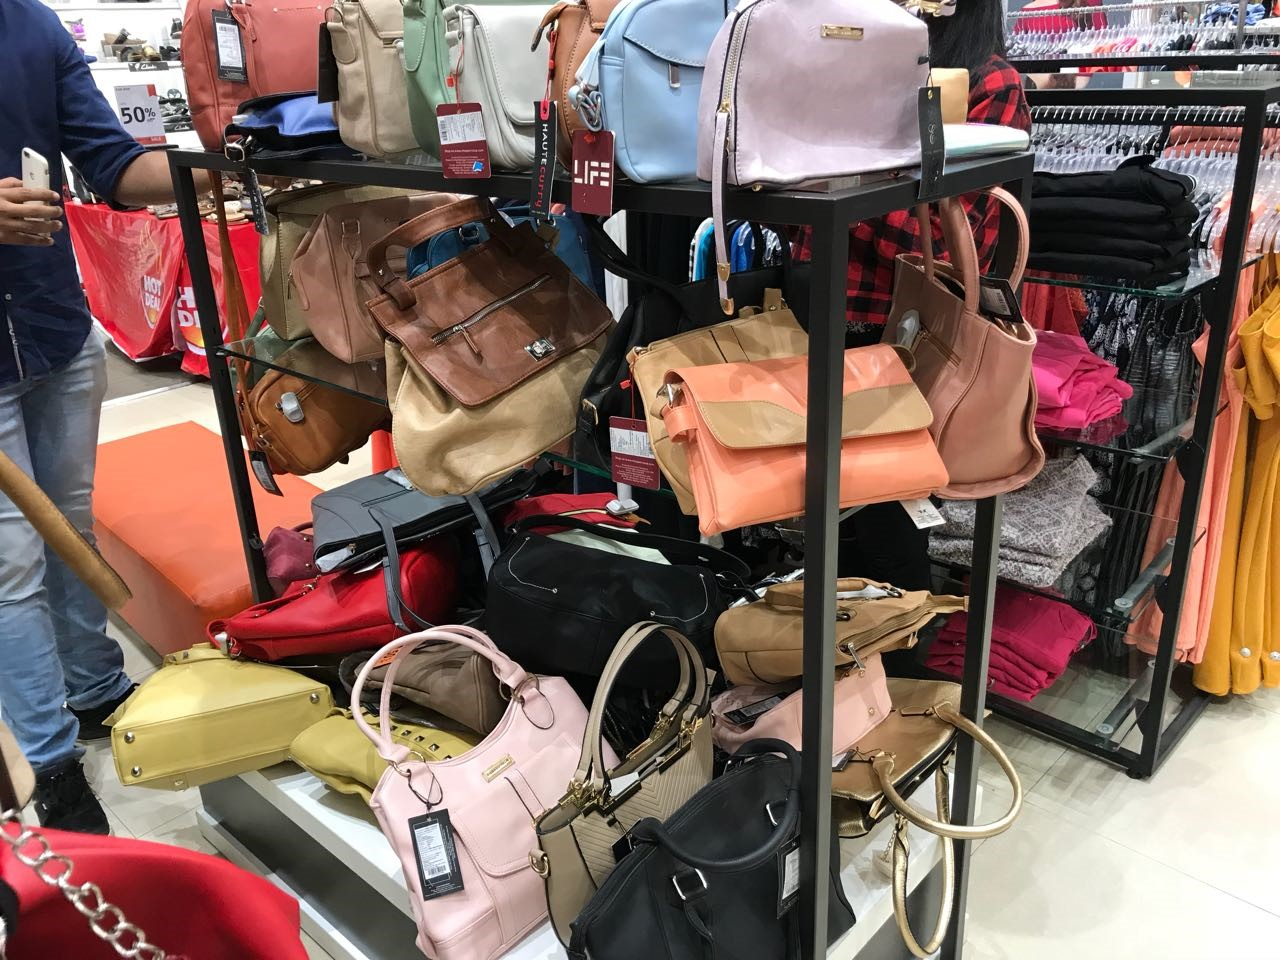 bag section internship journey of a jediiian at shoppers stop - bag section - Internship Journey of a JEDIIIAN at Shoppers Stop